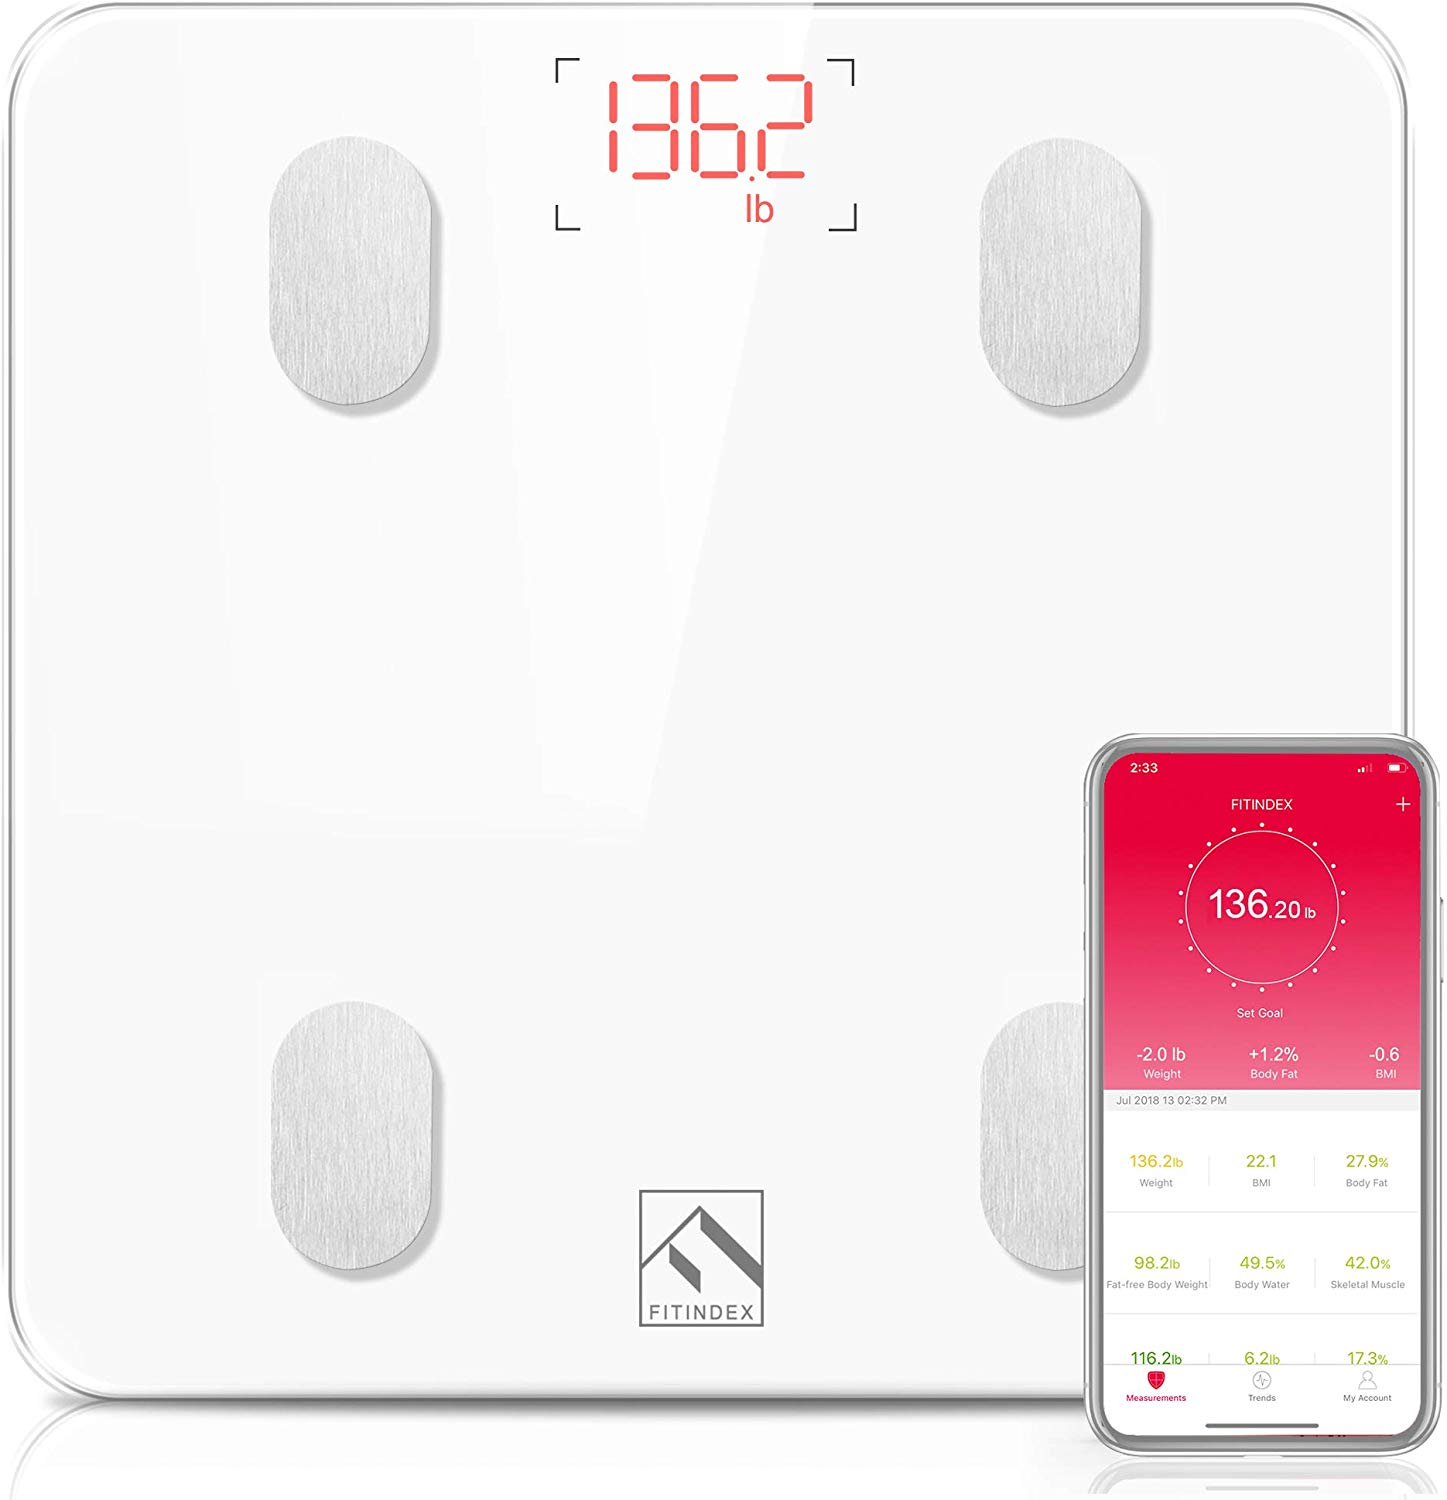 FITINDEX Bluetooth Body Fat Scale.